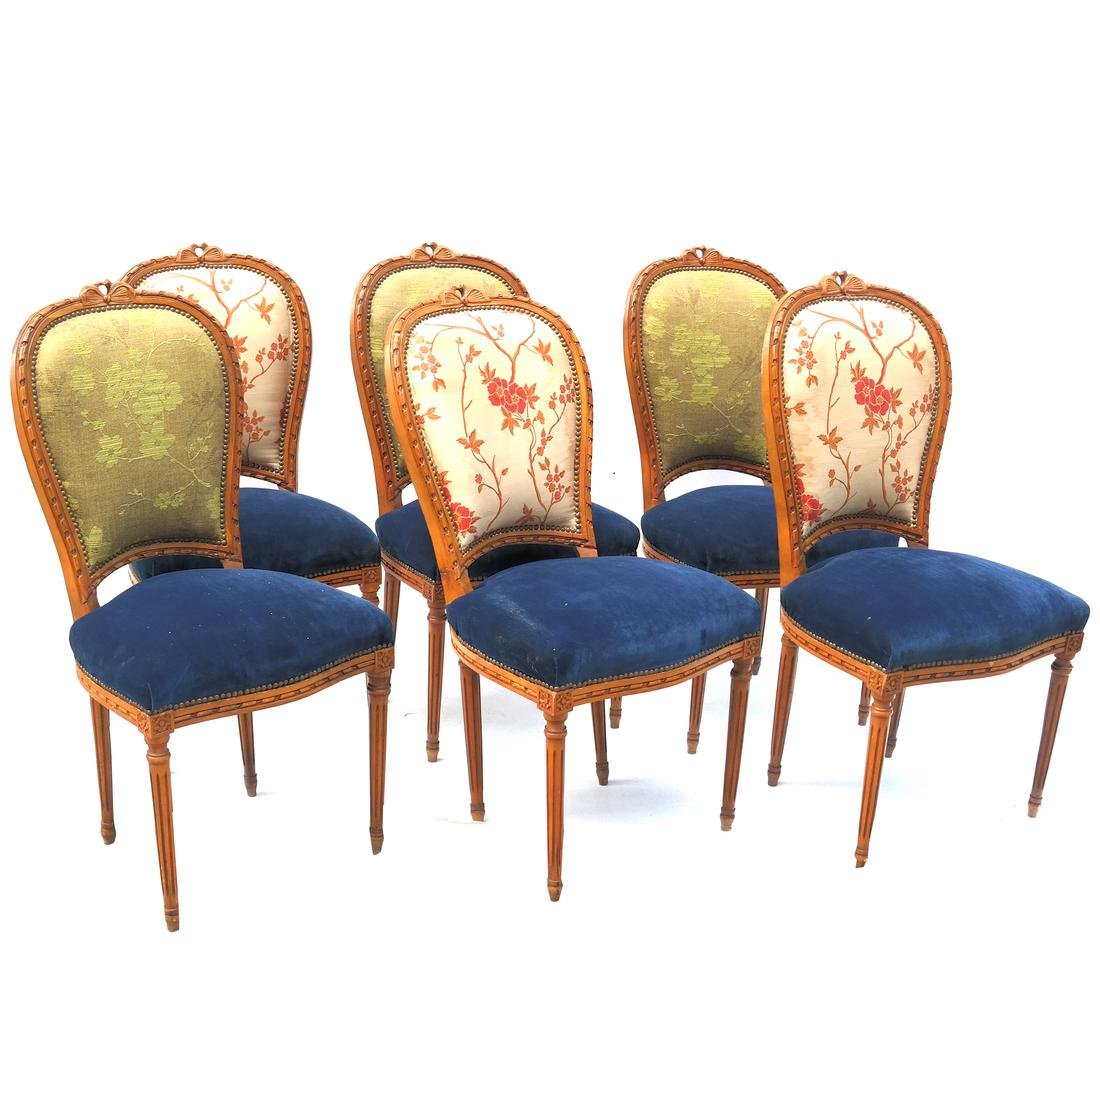 Set of 6 French-Style Side Chairs